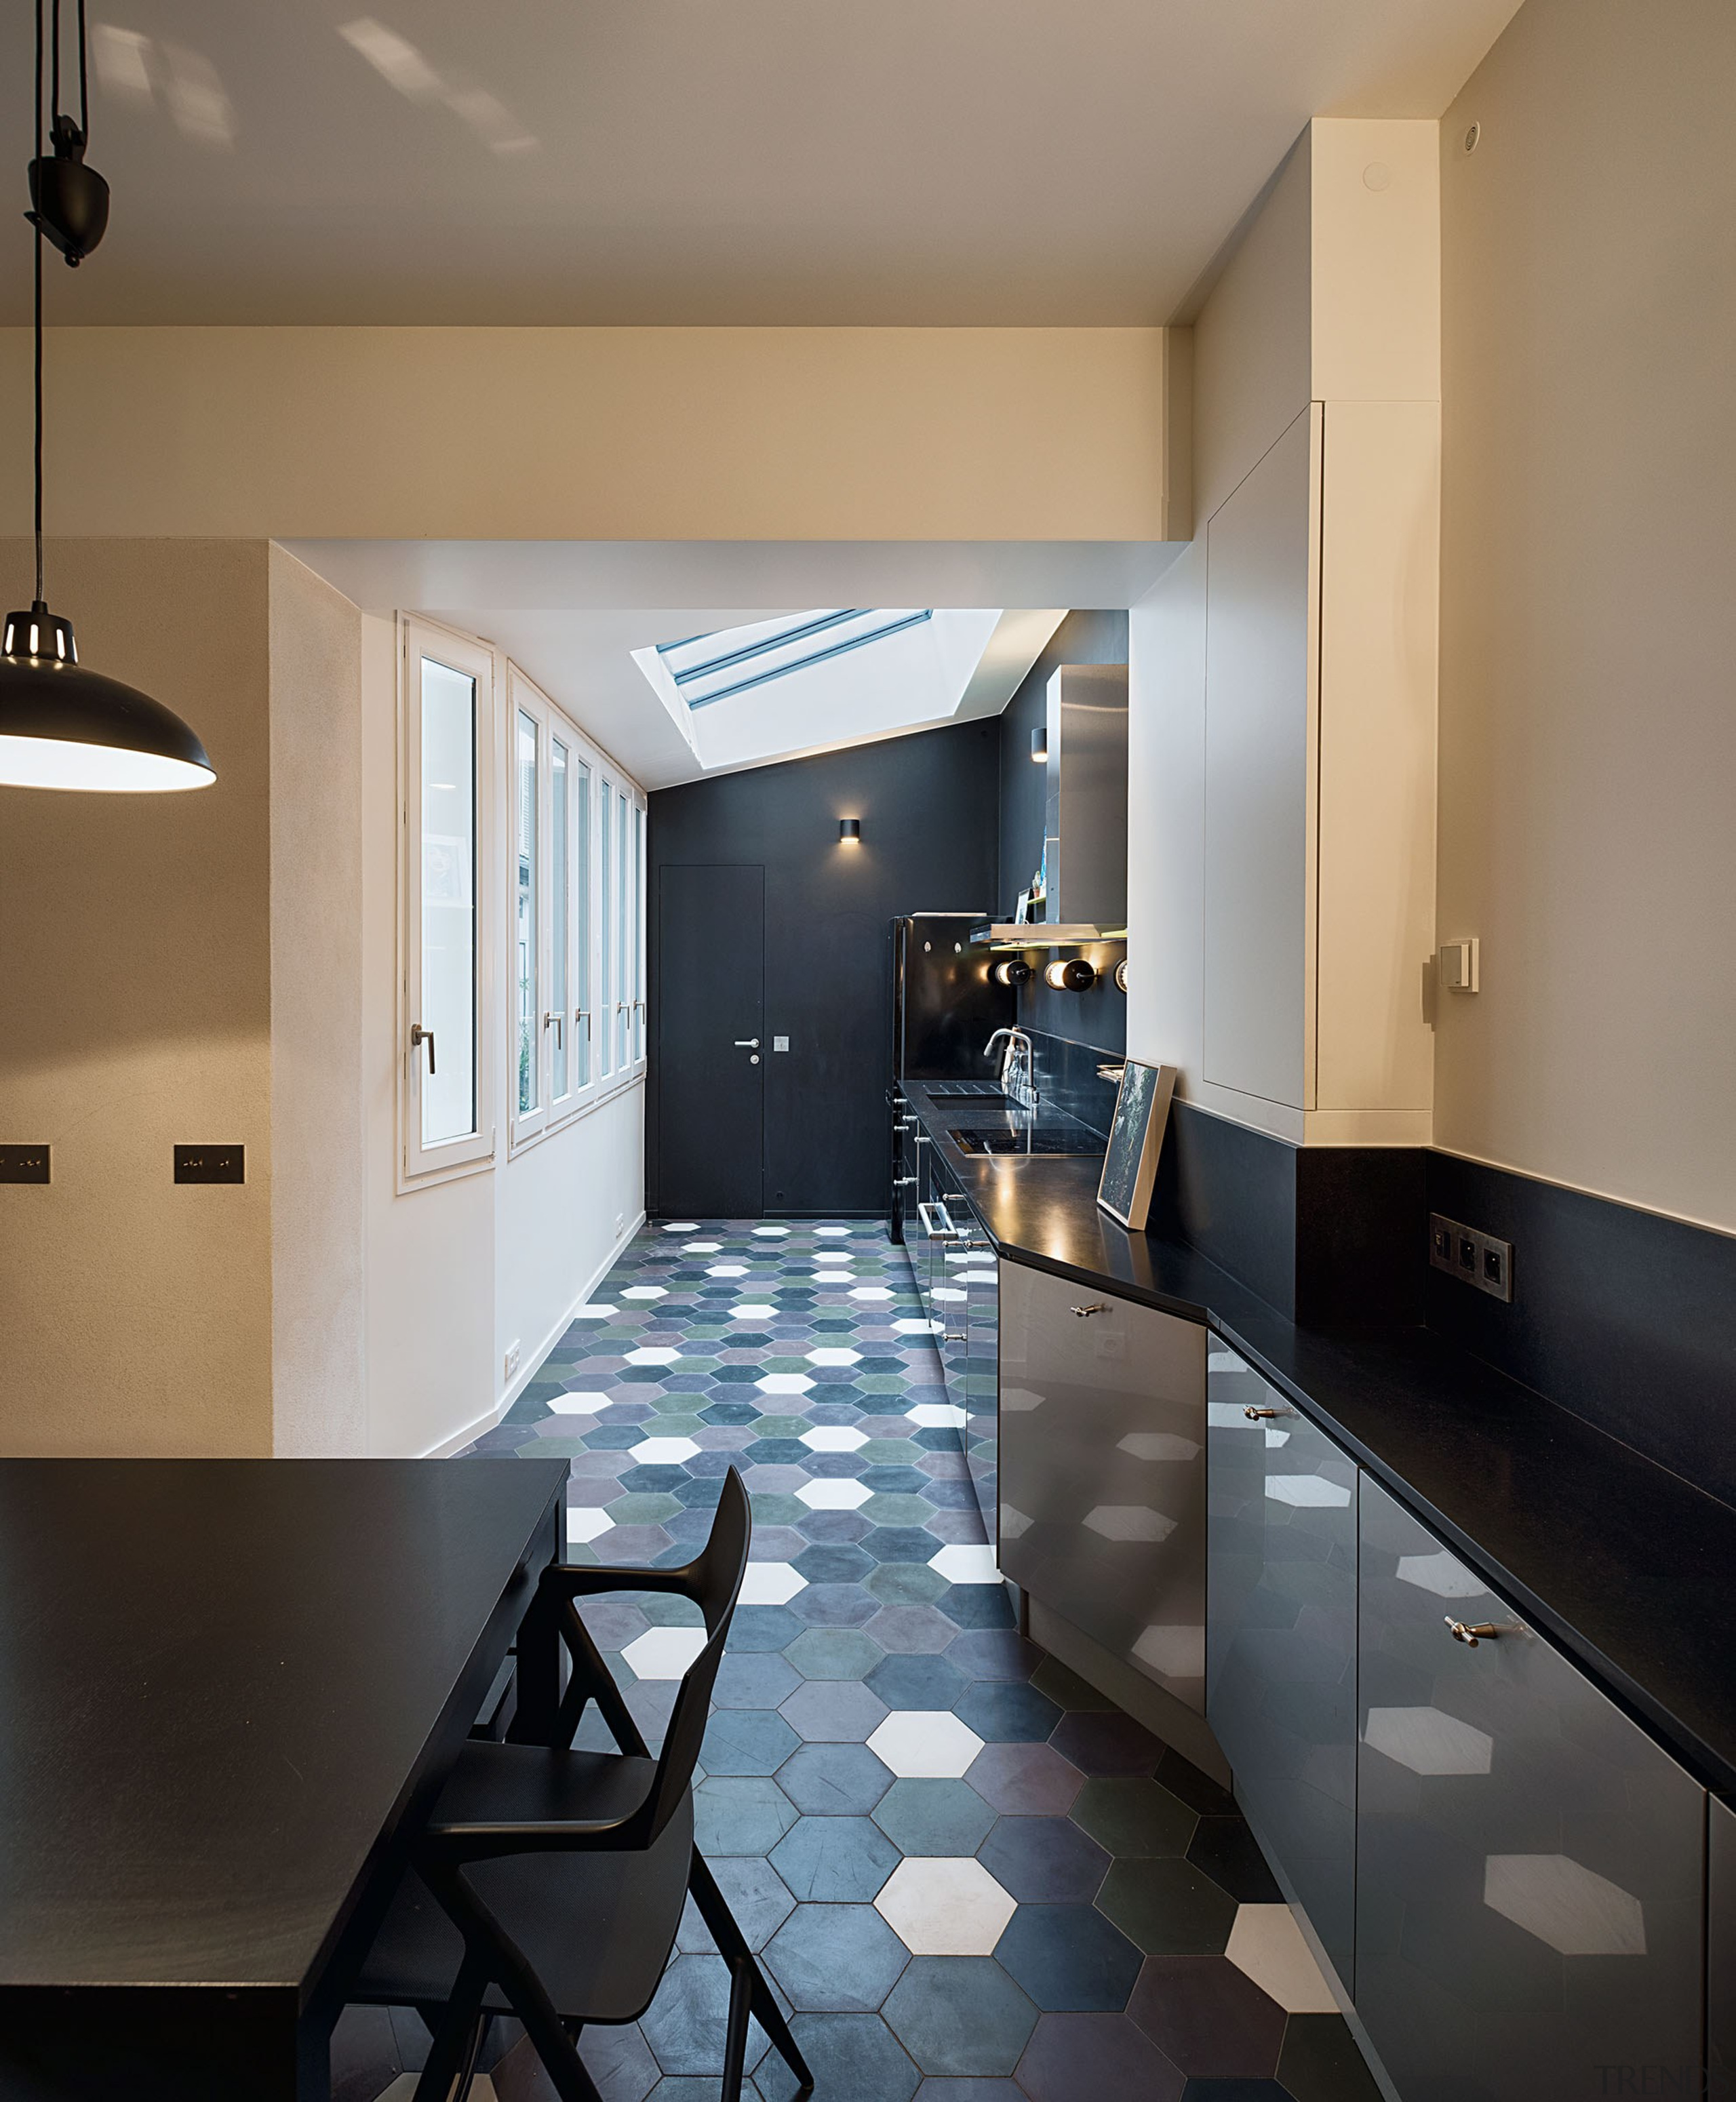 Dining room and kitchen, steel and stainless steel apartment, architecture, building, cabinetry, ceiling, countertop, daylighting, design, floor, flooring, furniture, home, house, interior design, kitchen, loft, property, real estate, room, tile, gray, black